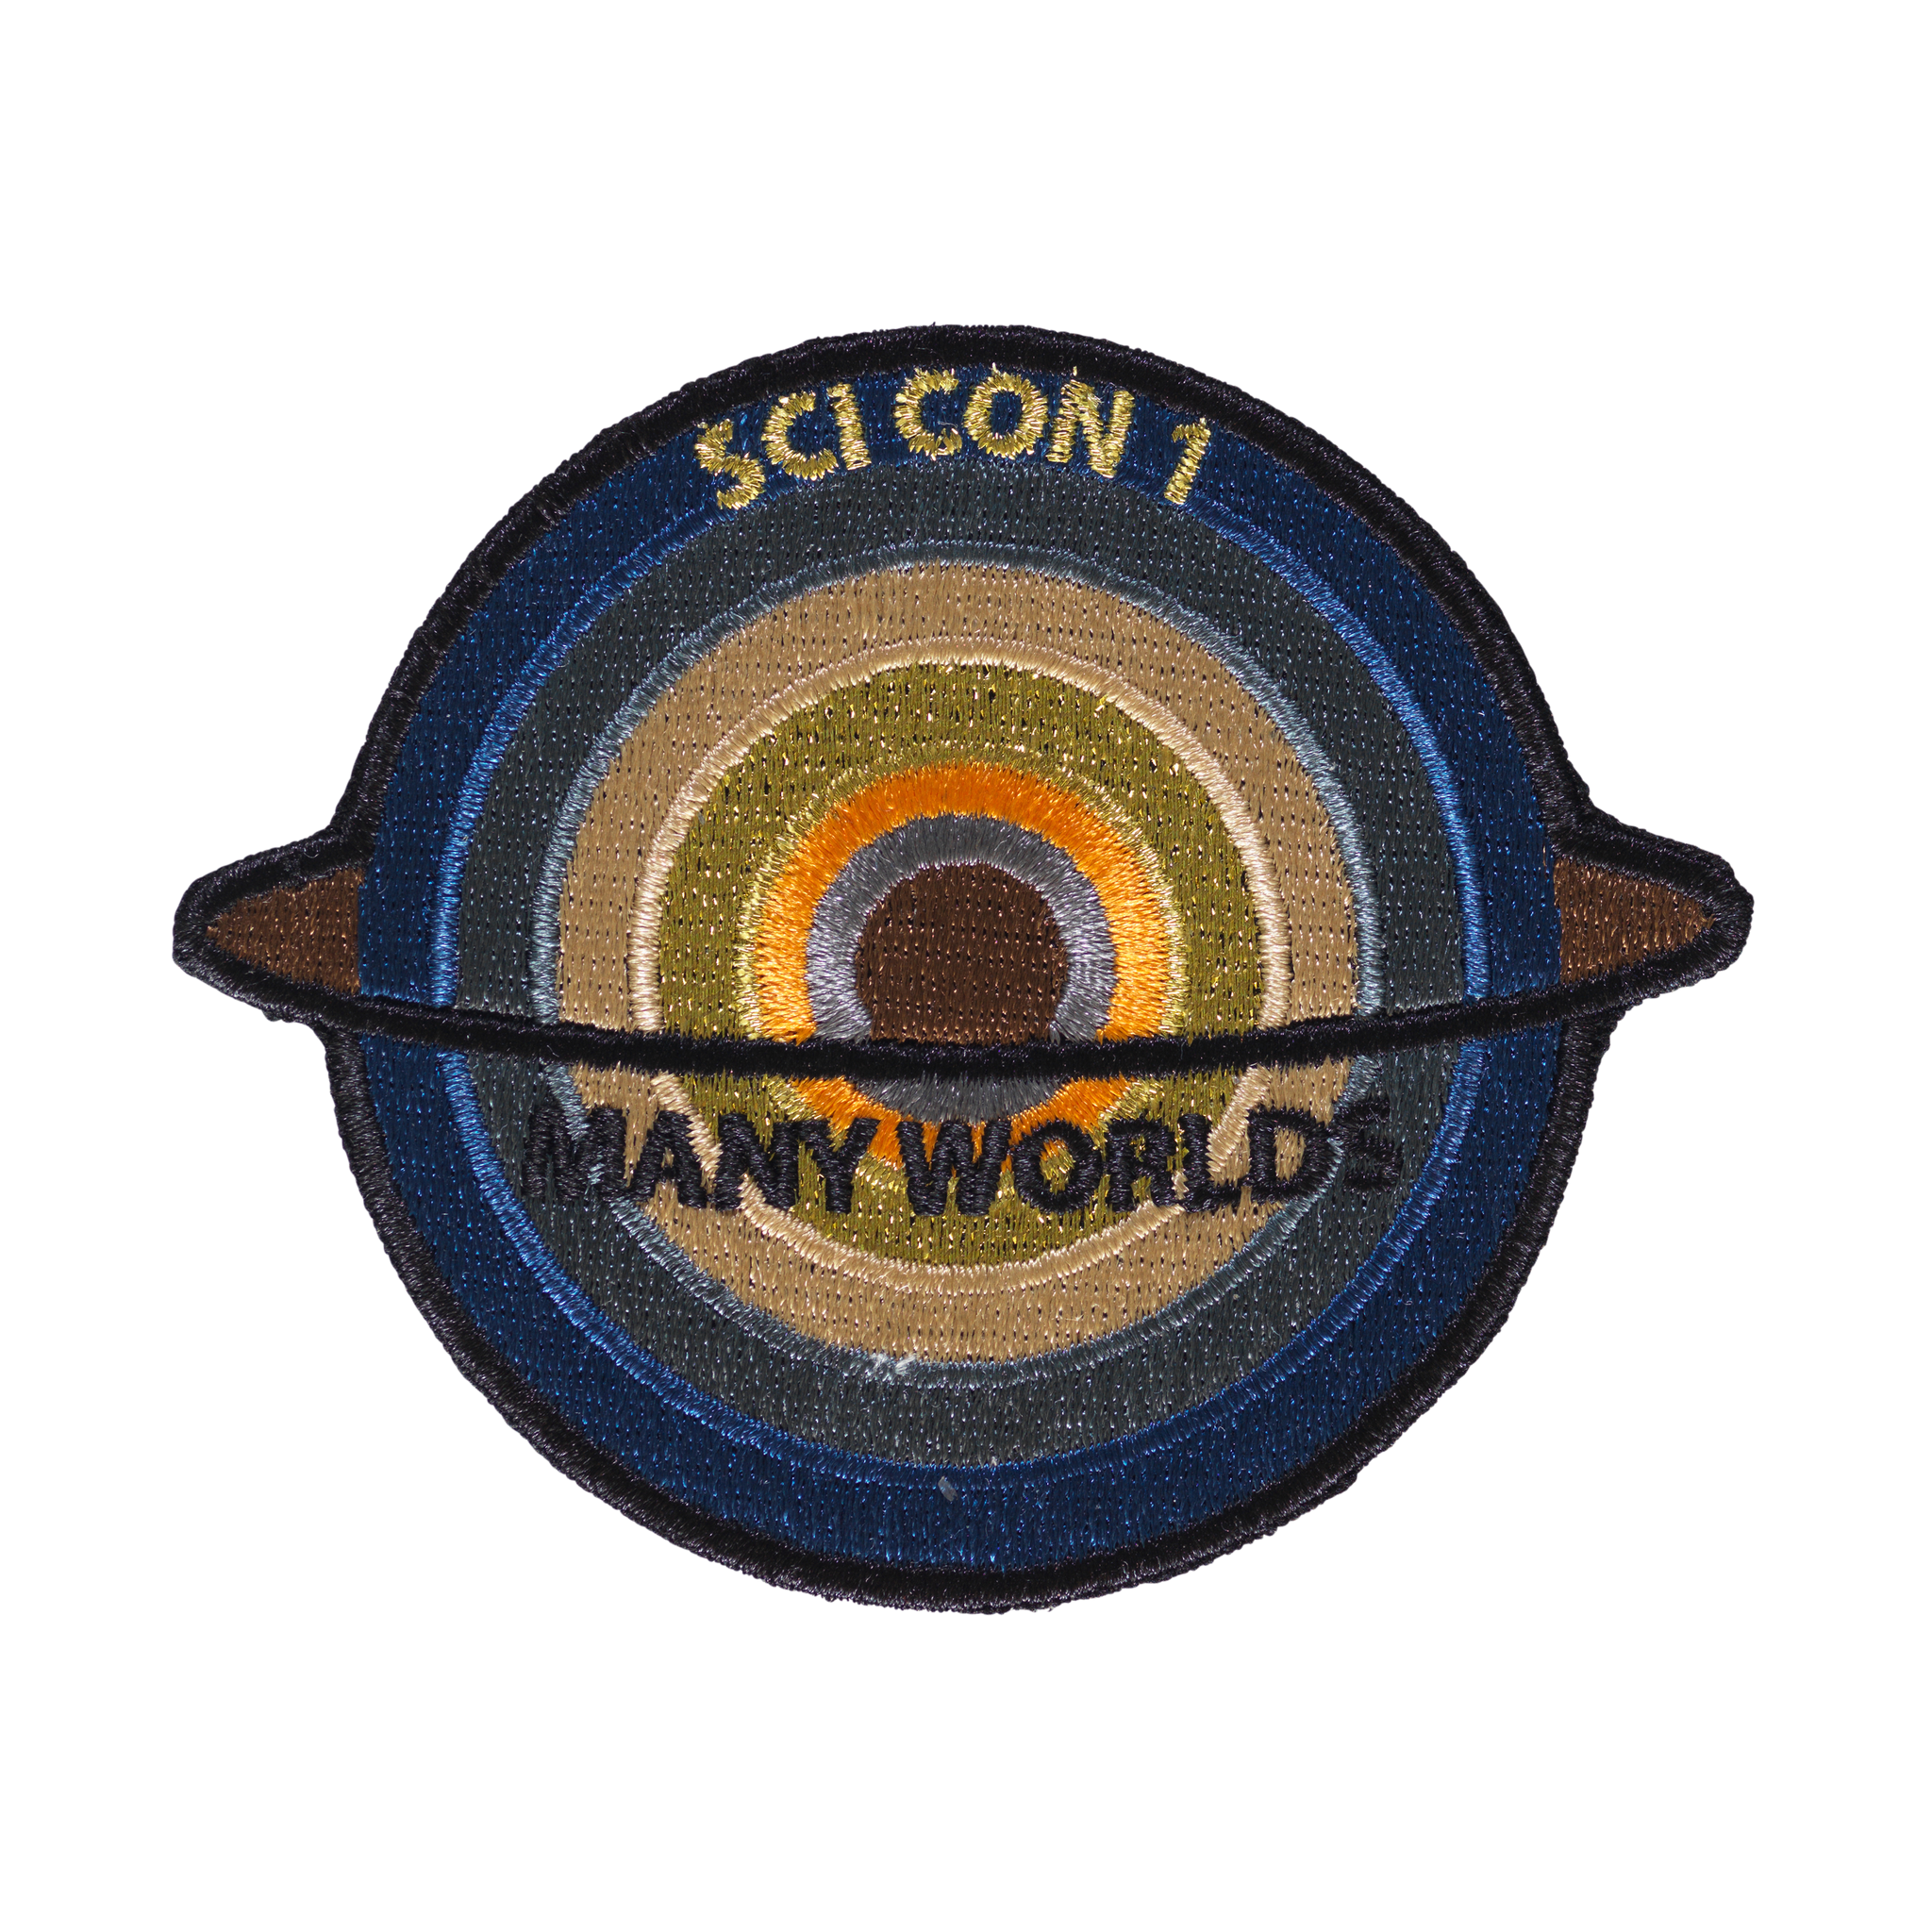 Scientific Controversies Patch: Many Worlds